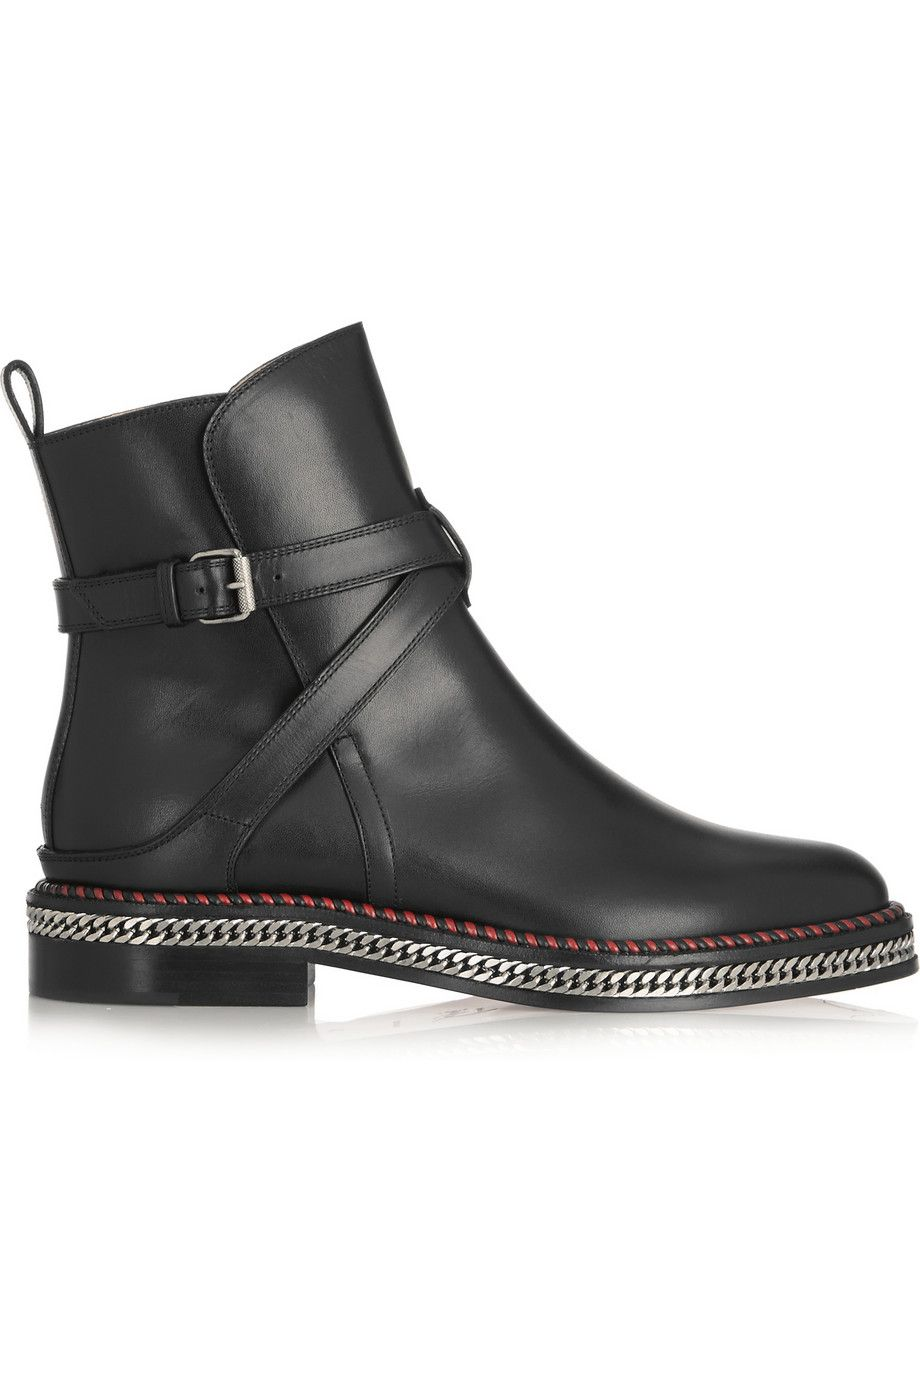 christian louboutin chelsea chain 20 leather ankle boots